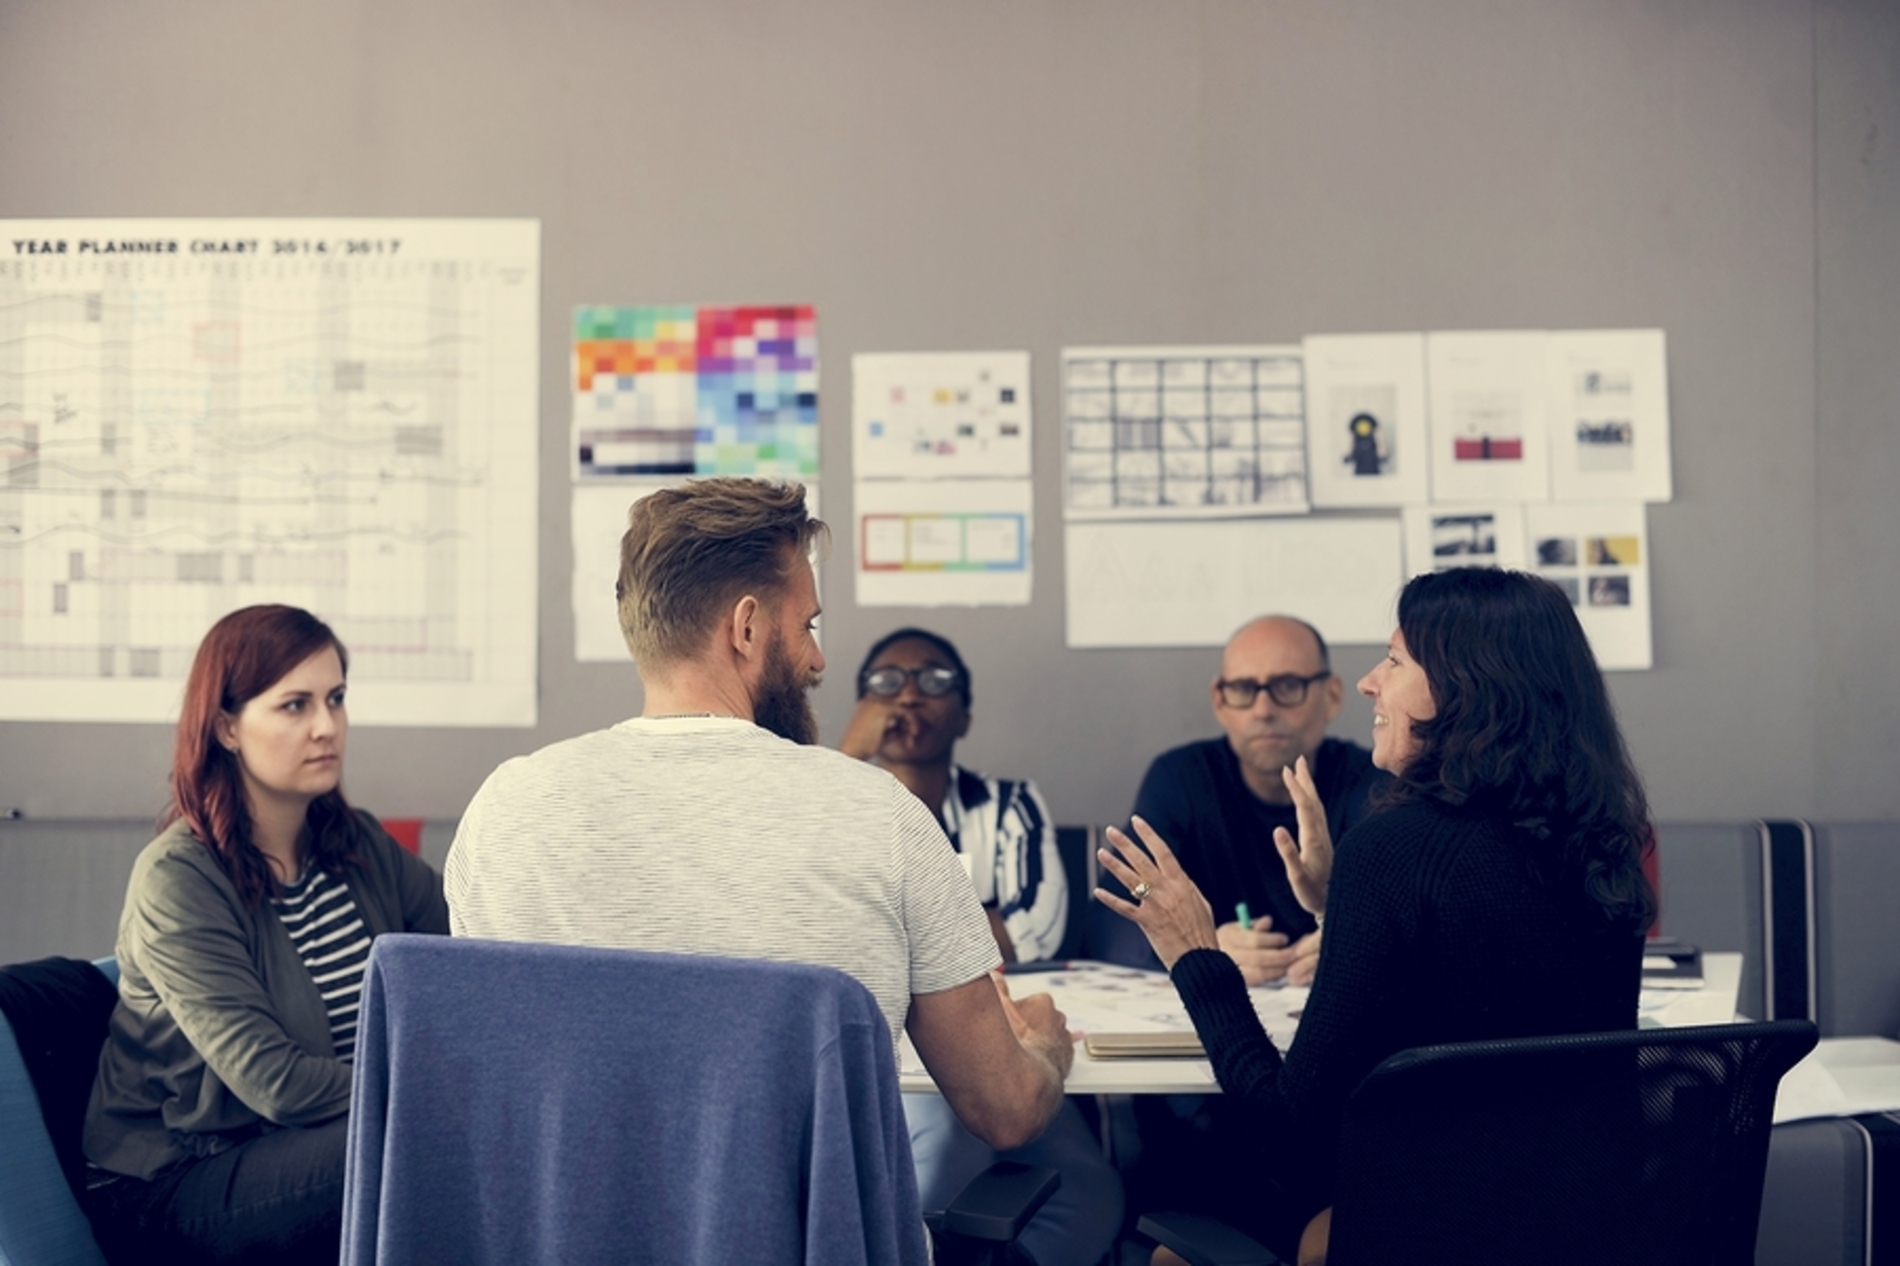 Group of colleagues discussing a project around a table.